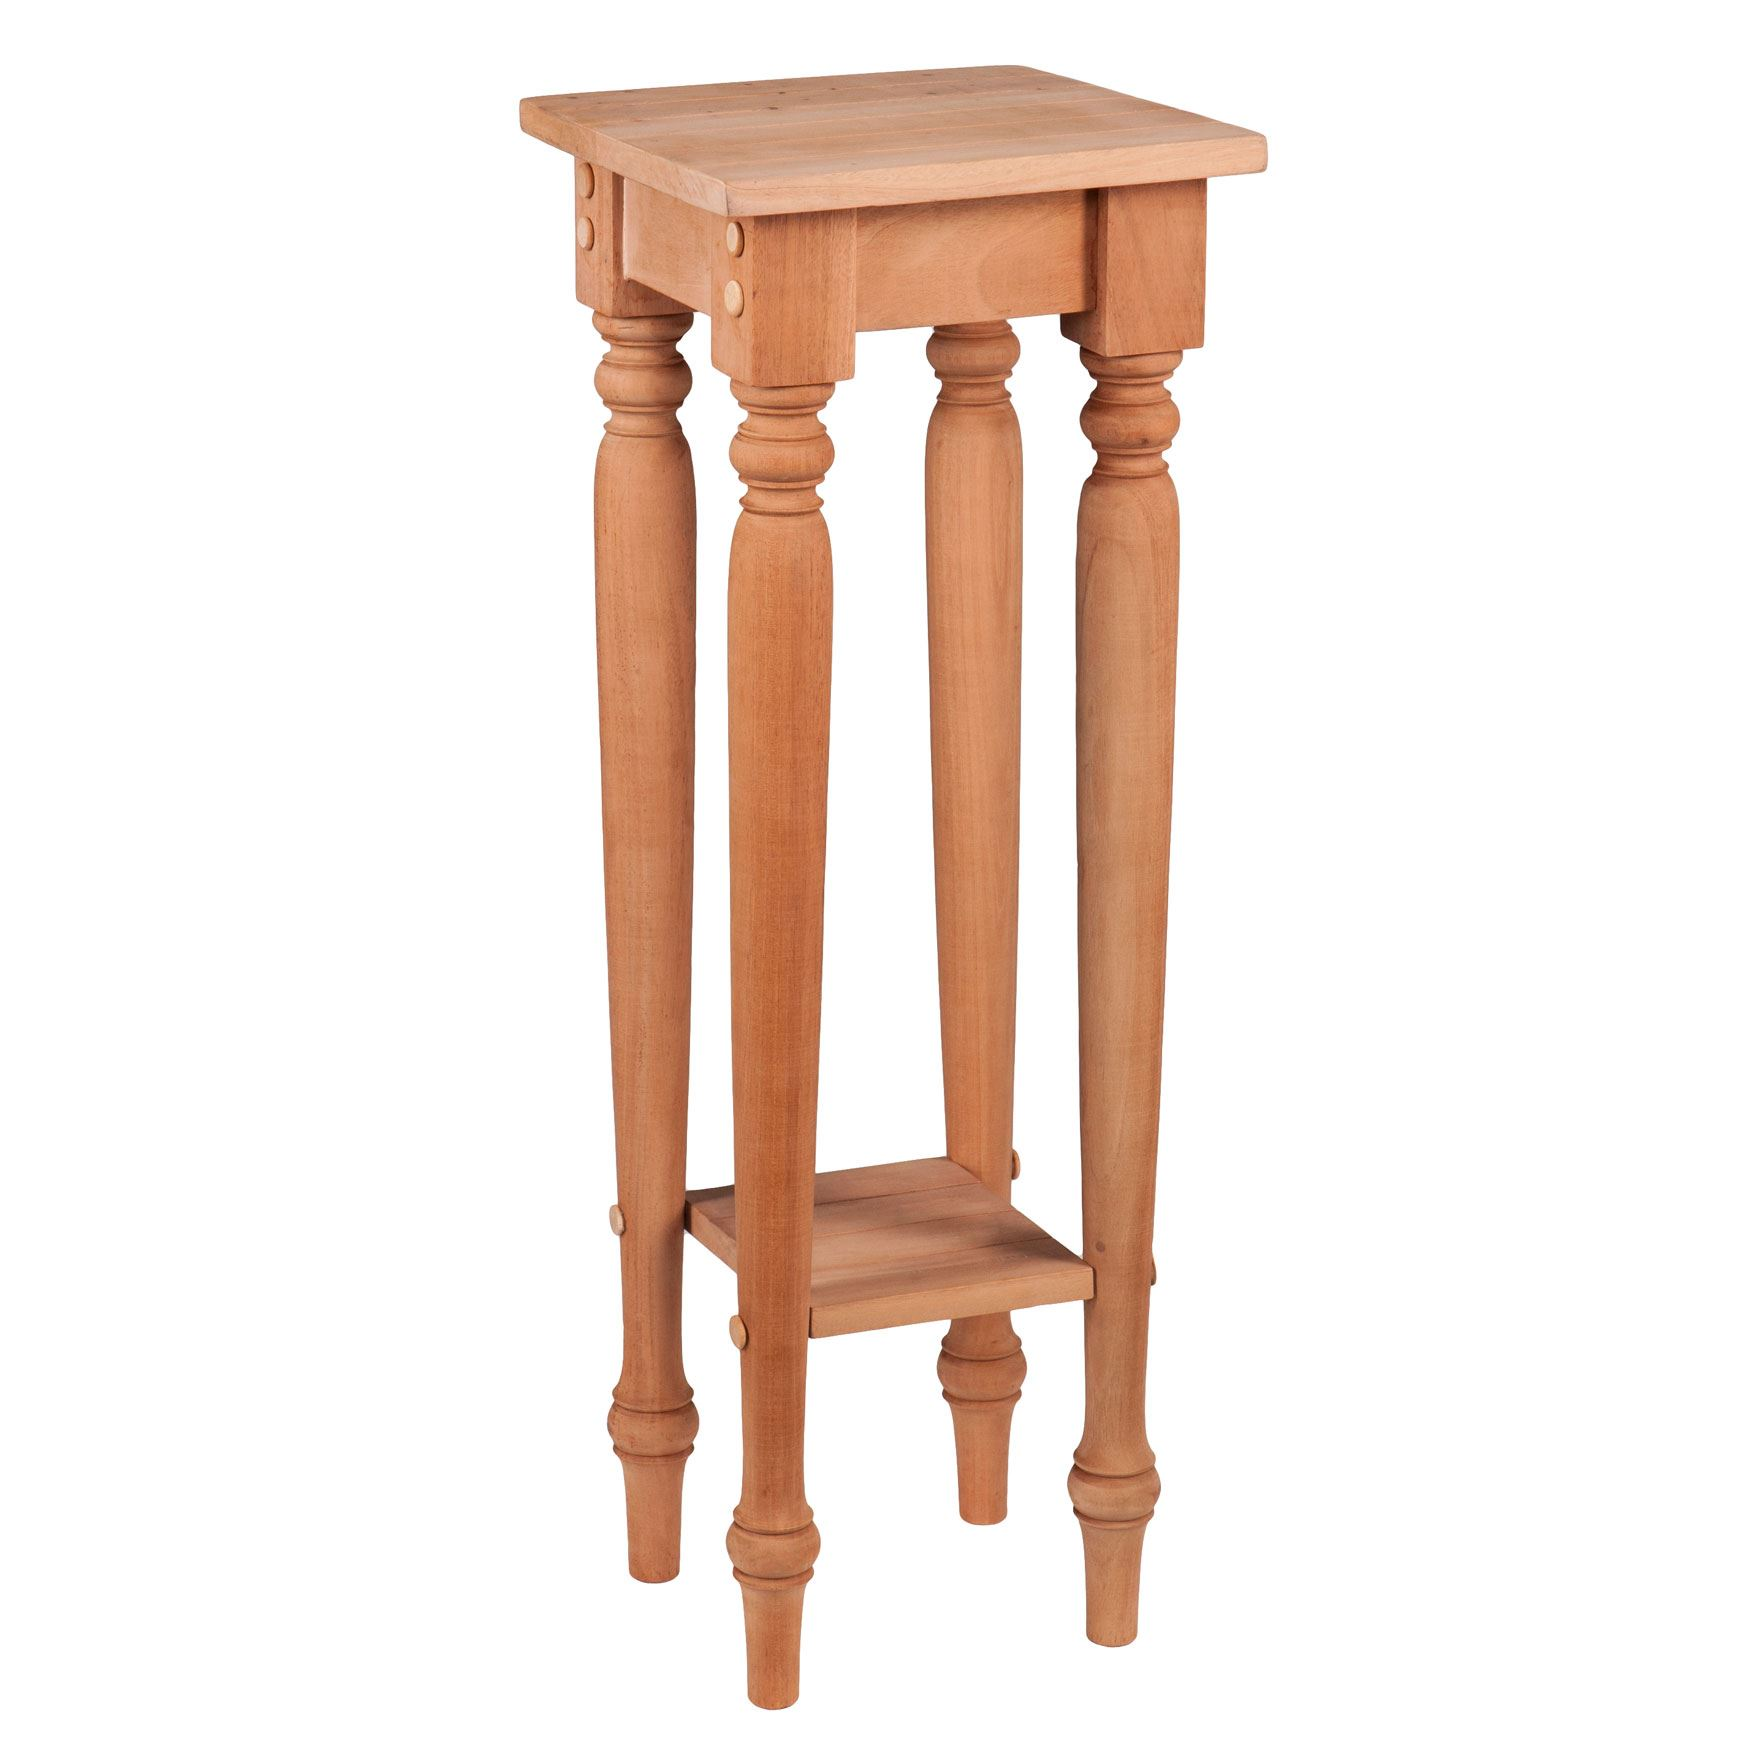 unfinished wood accent table plus size coffee end side tables hourglass mission victorian style and valley city furniture glass dining chairs clearance lamps for bedroom spring